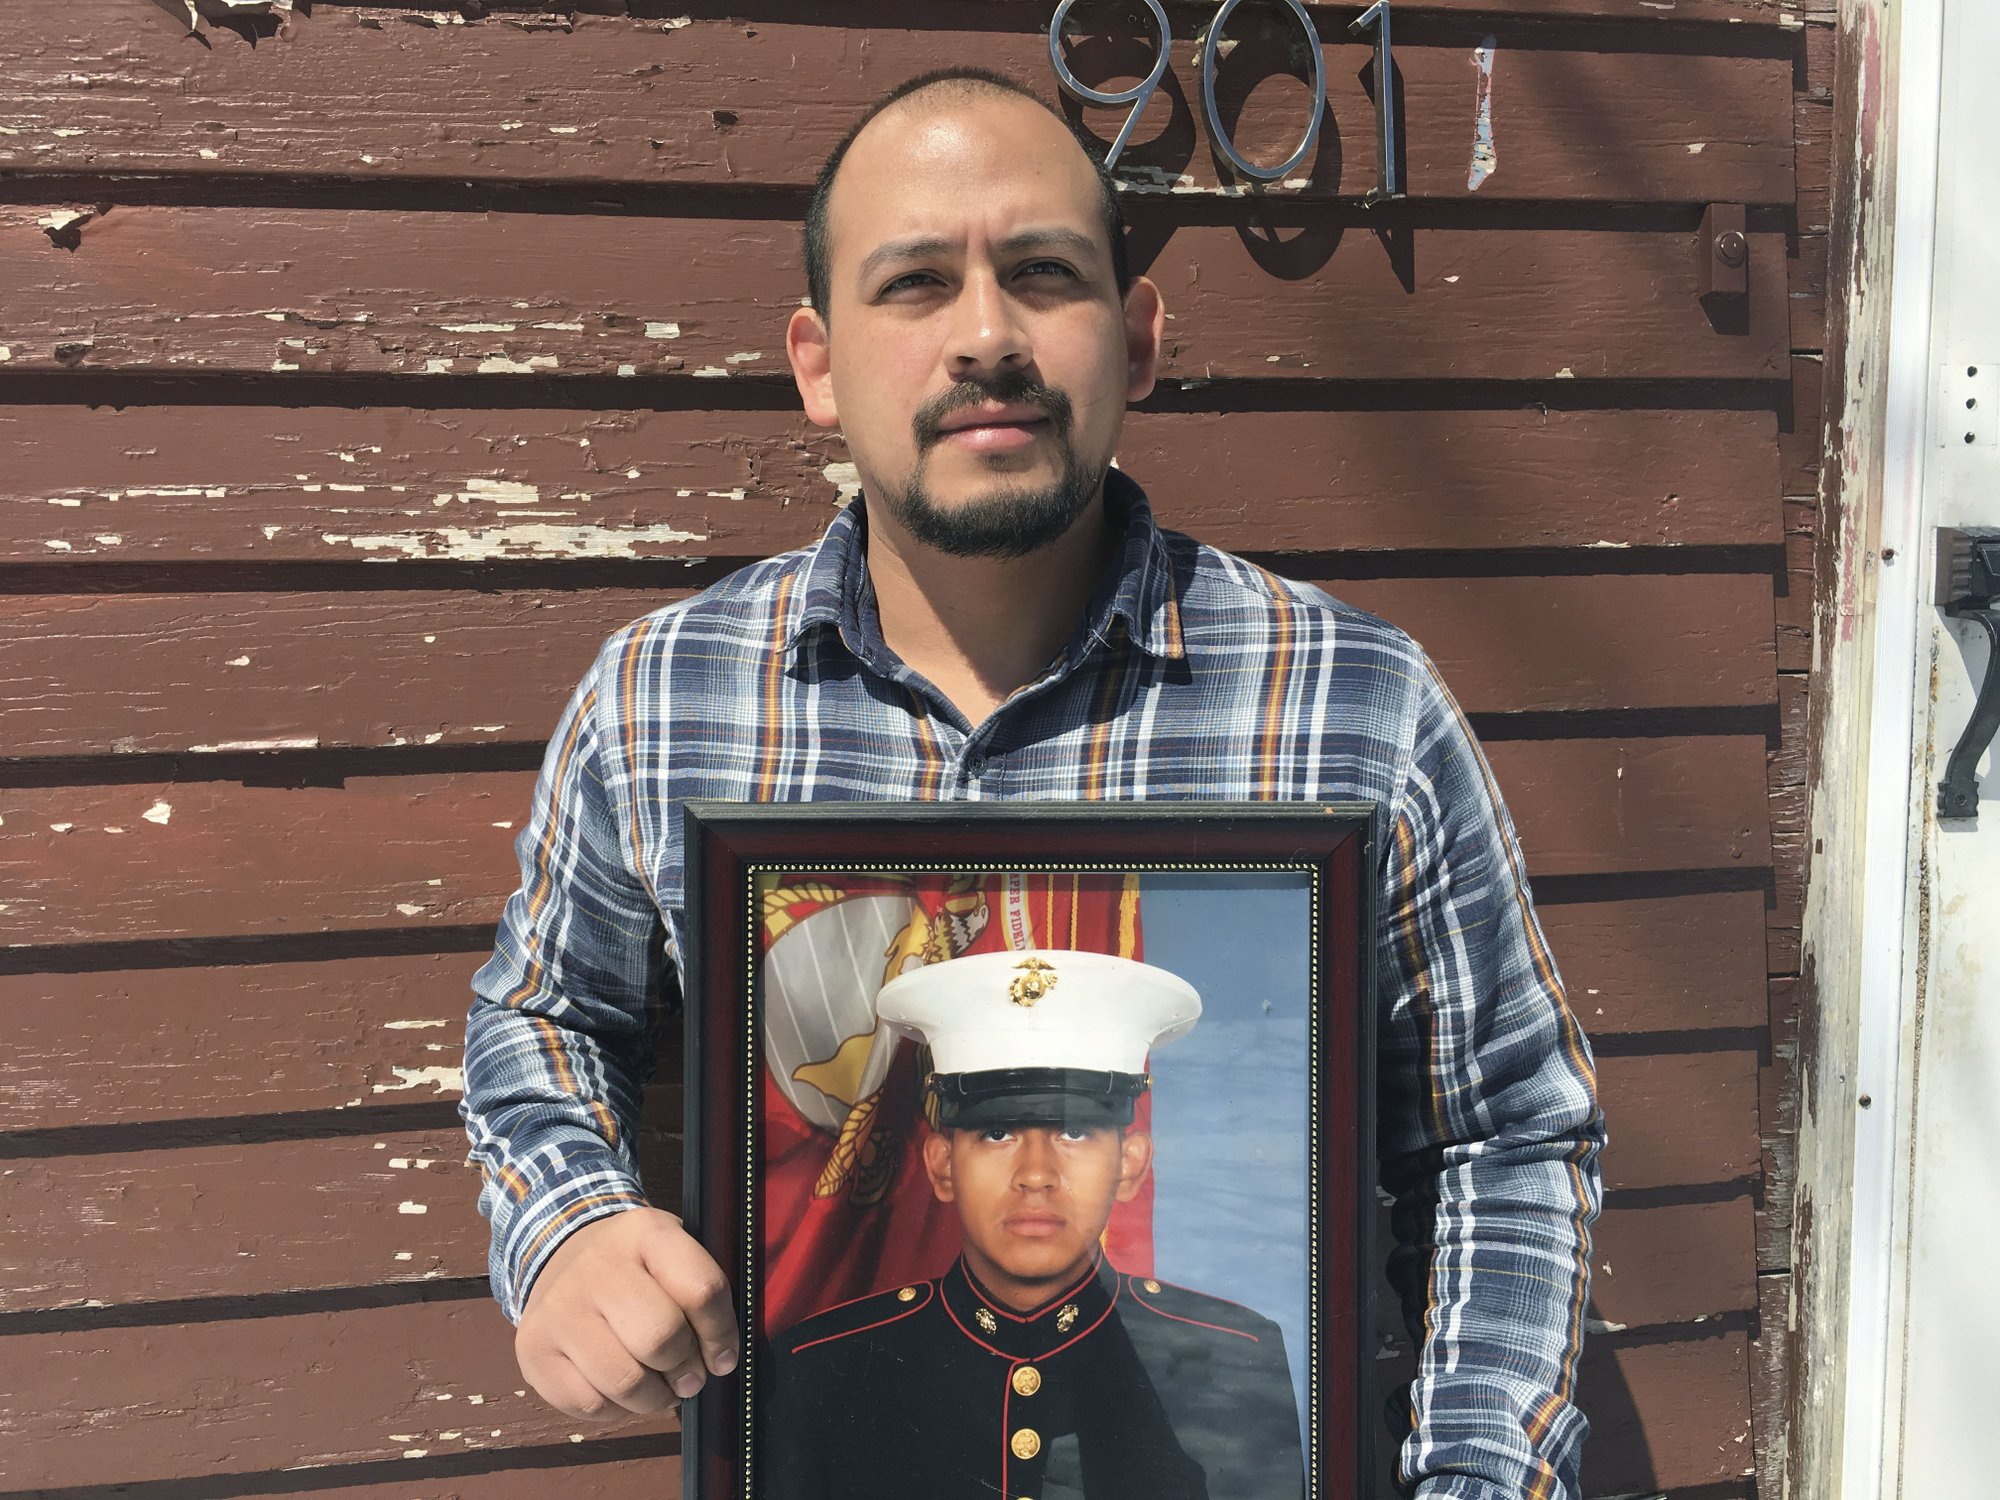 US military veteran sues after twice being denied a passport